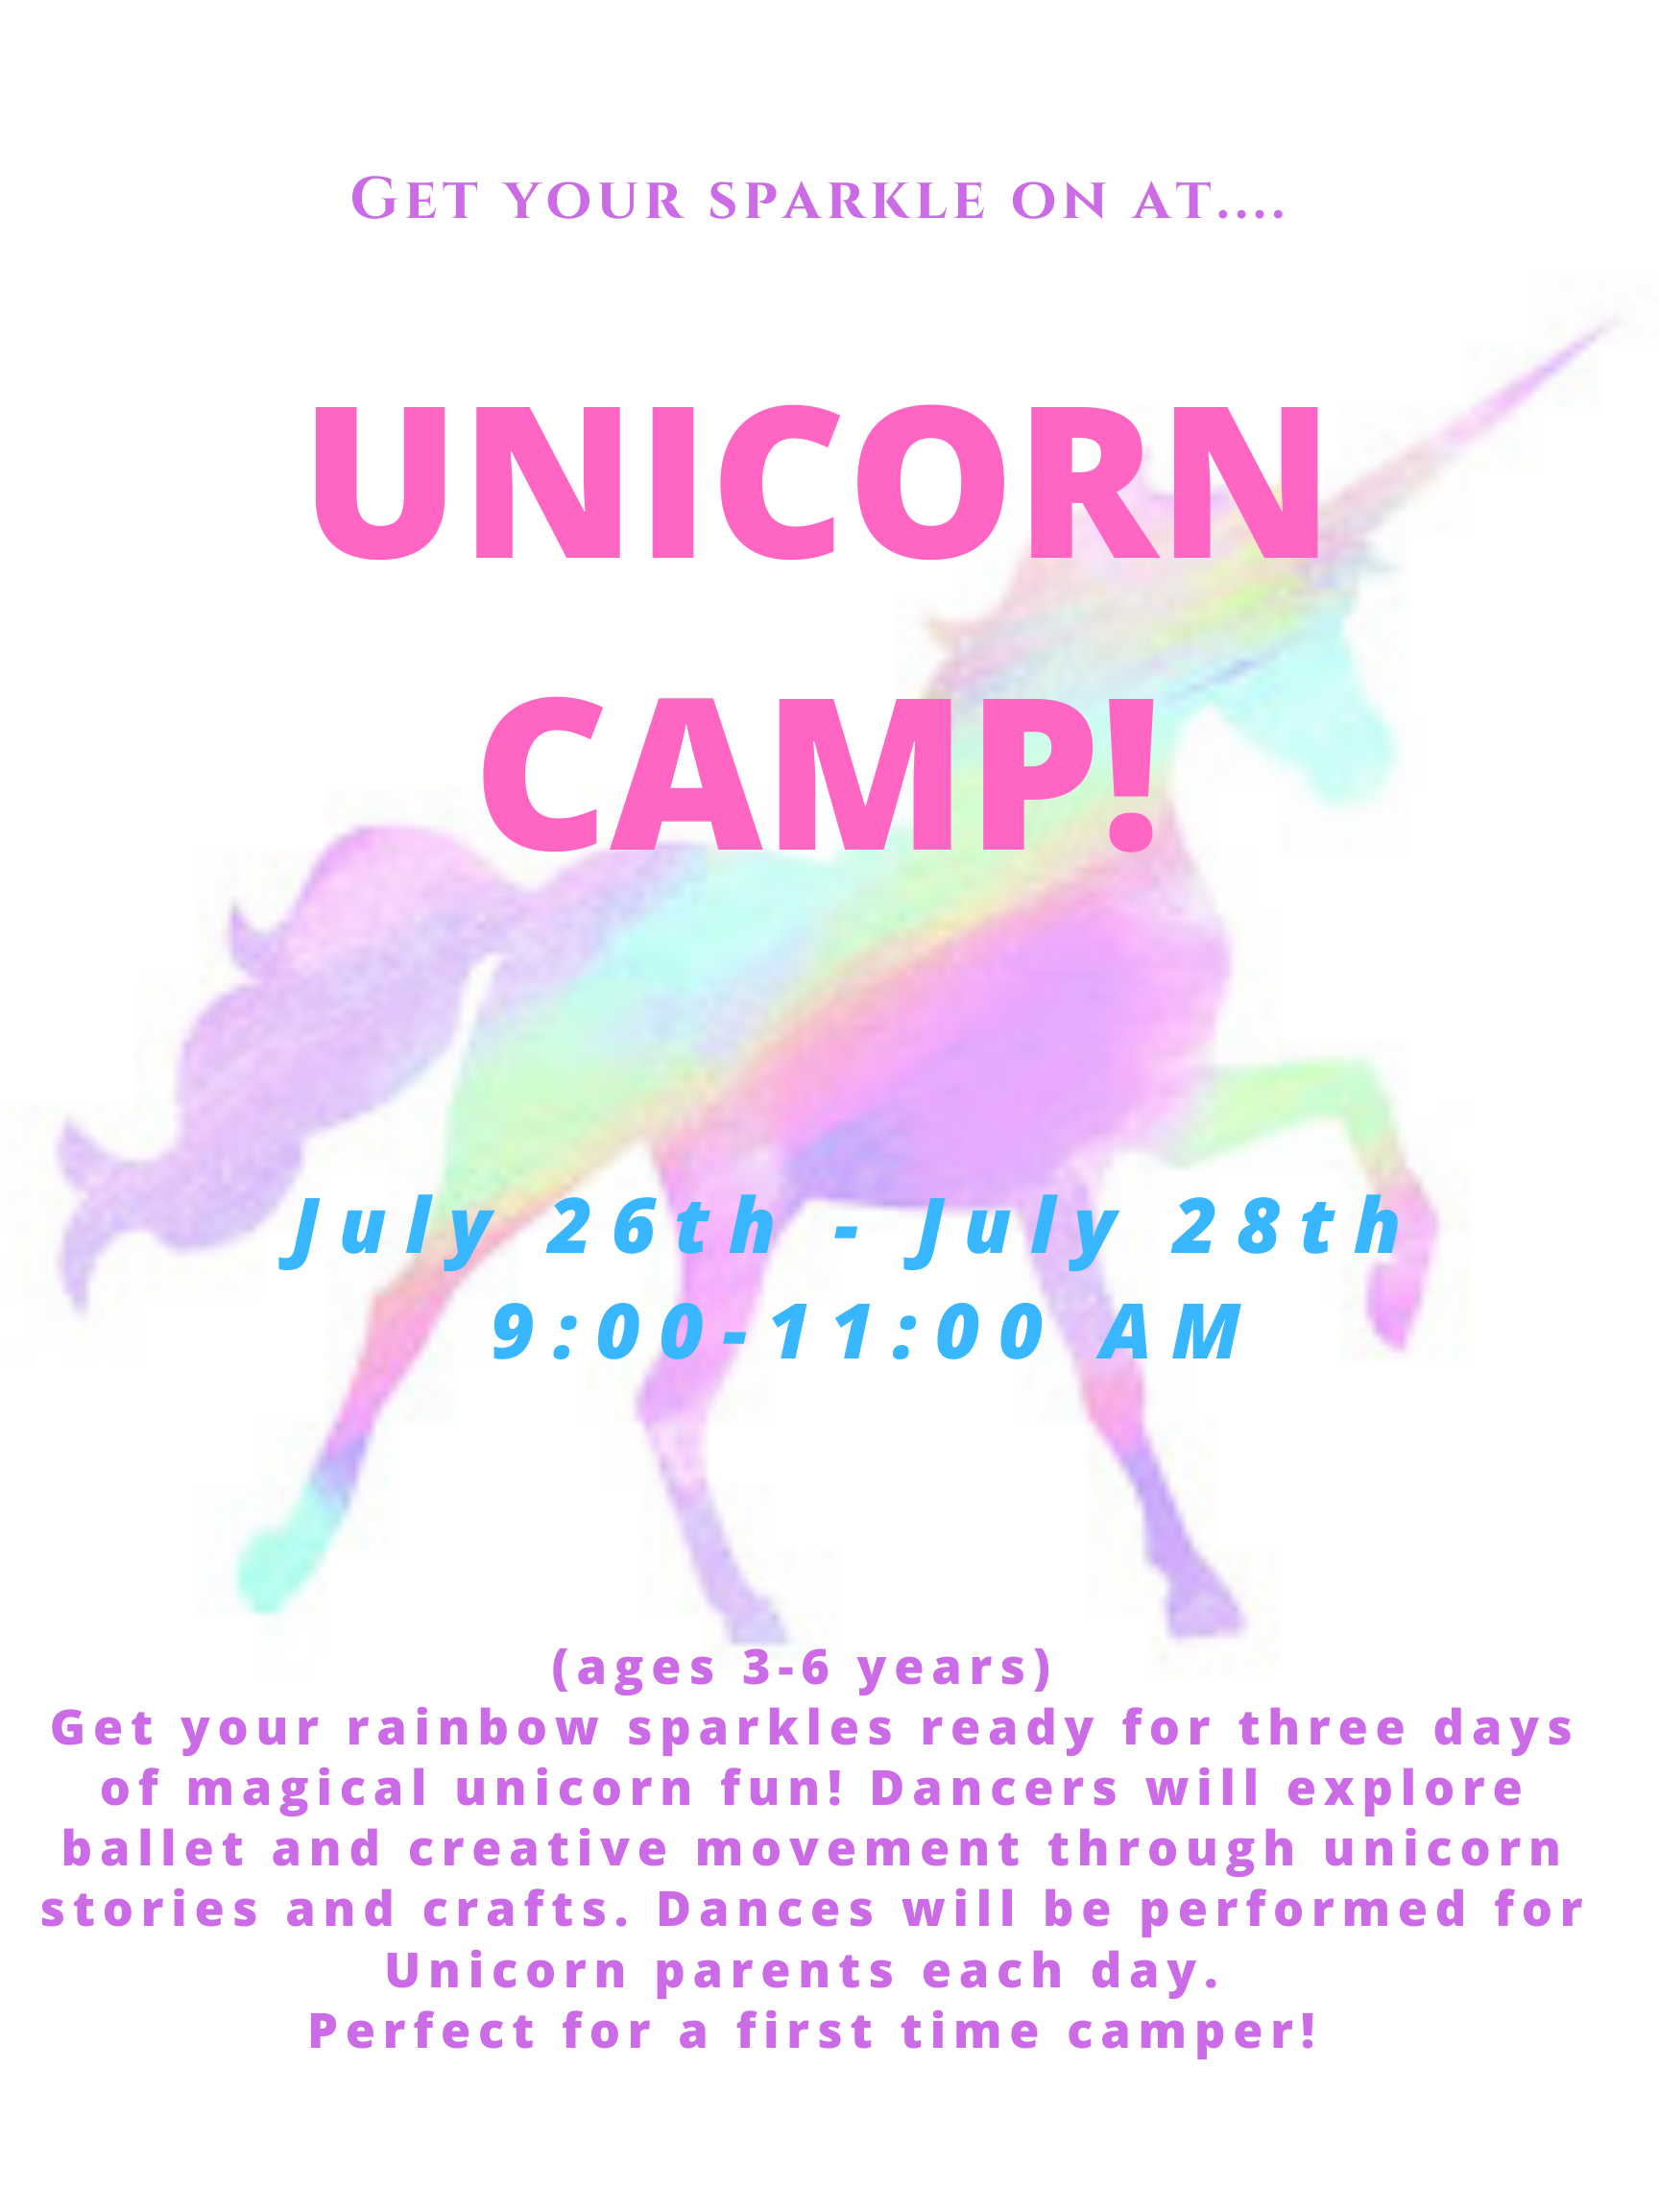 Unicorn Camp Poster